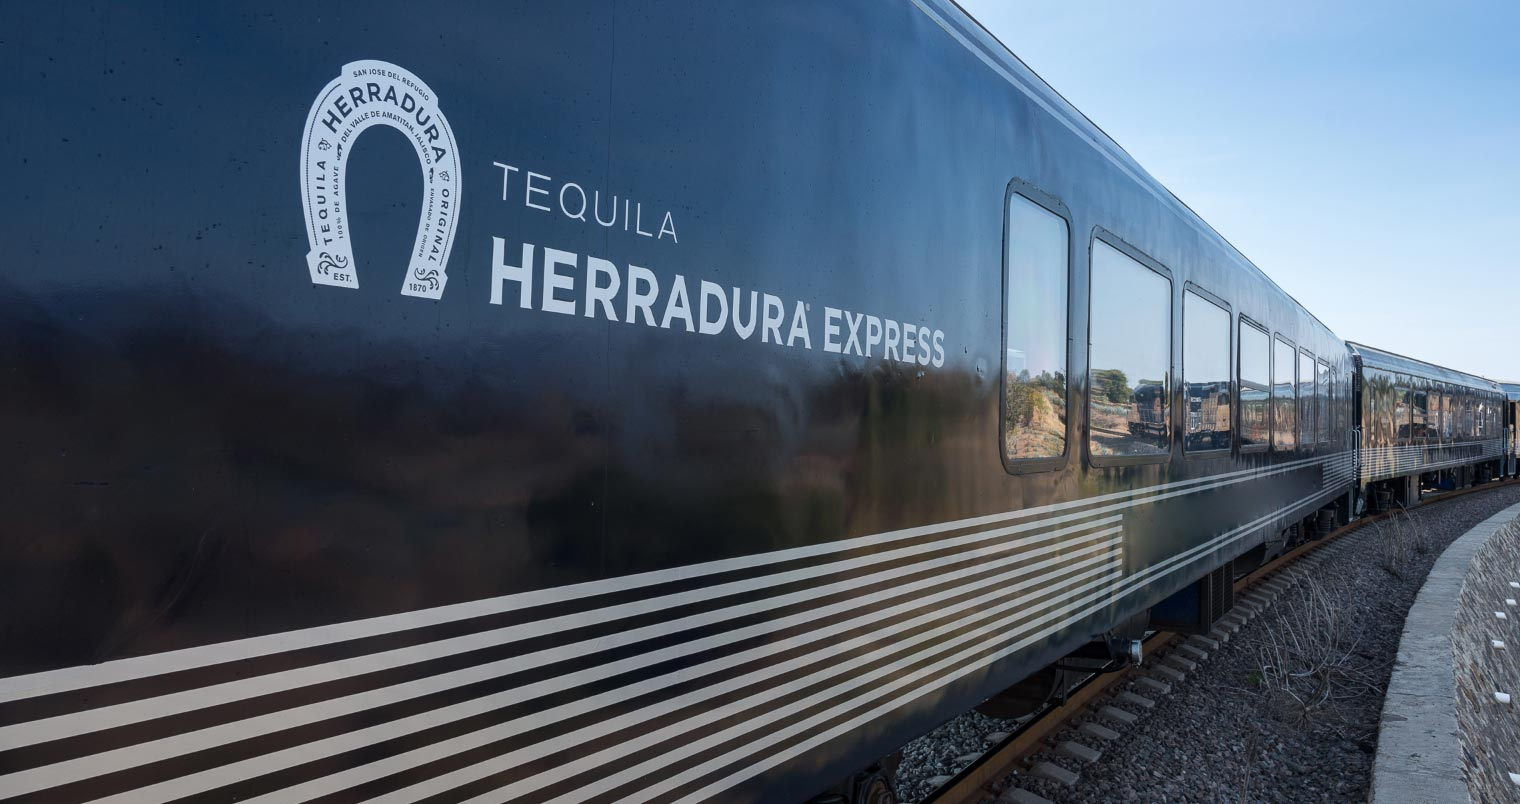 A luxury train that zips through Mexico and offers all you can drink Tequila